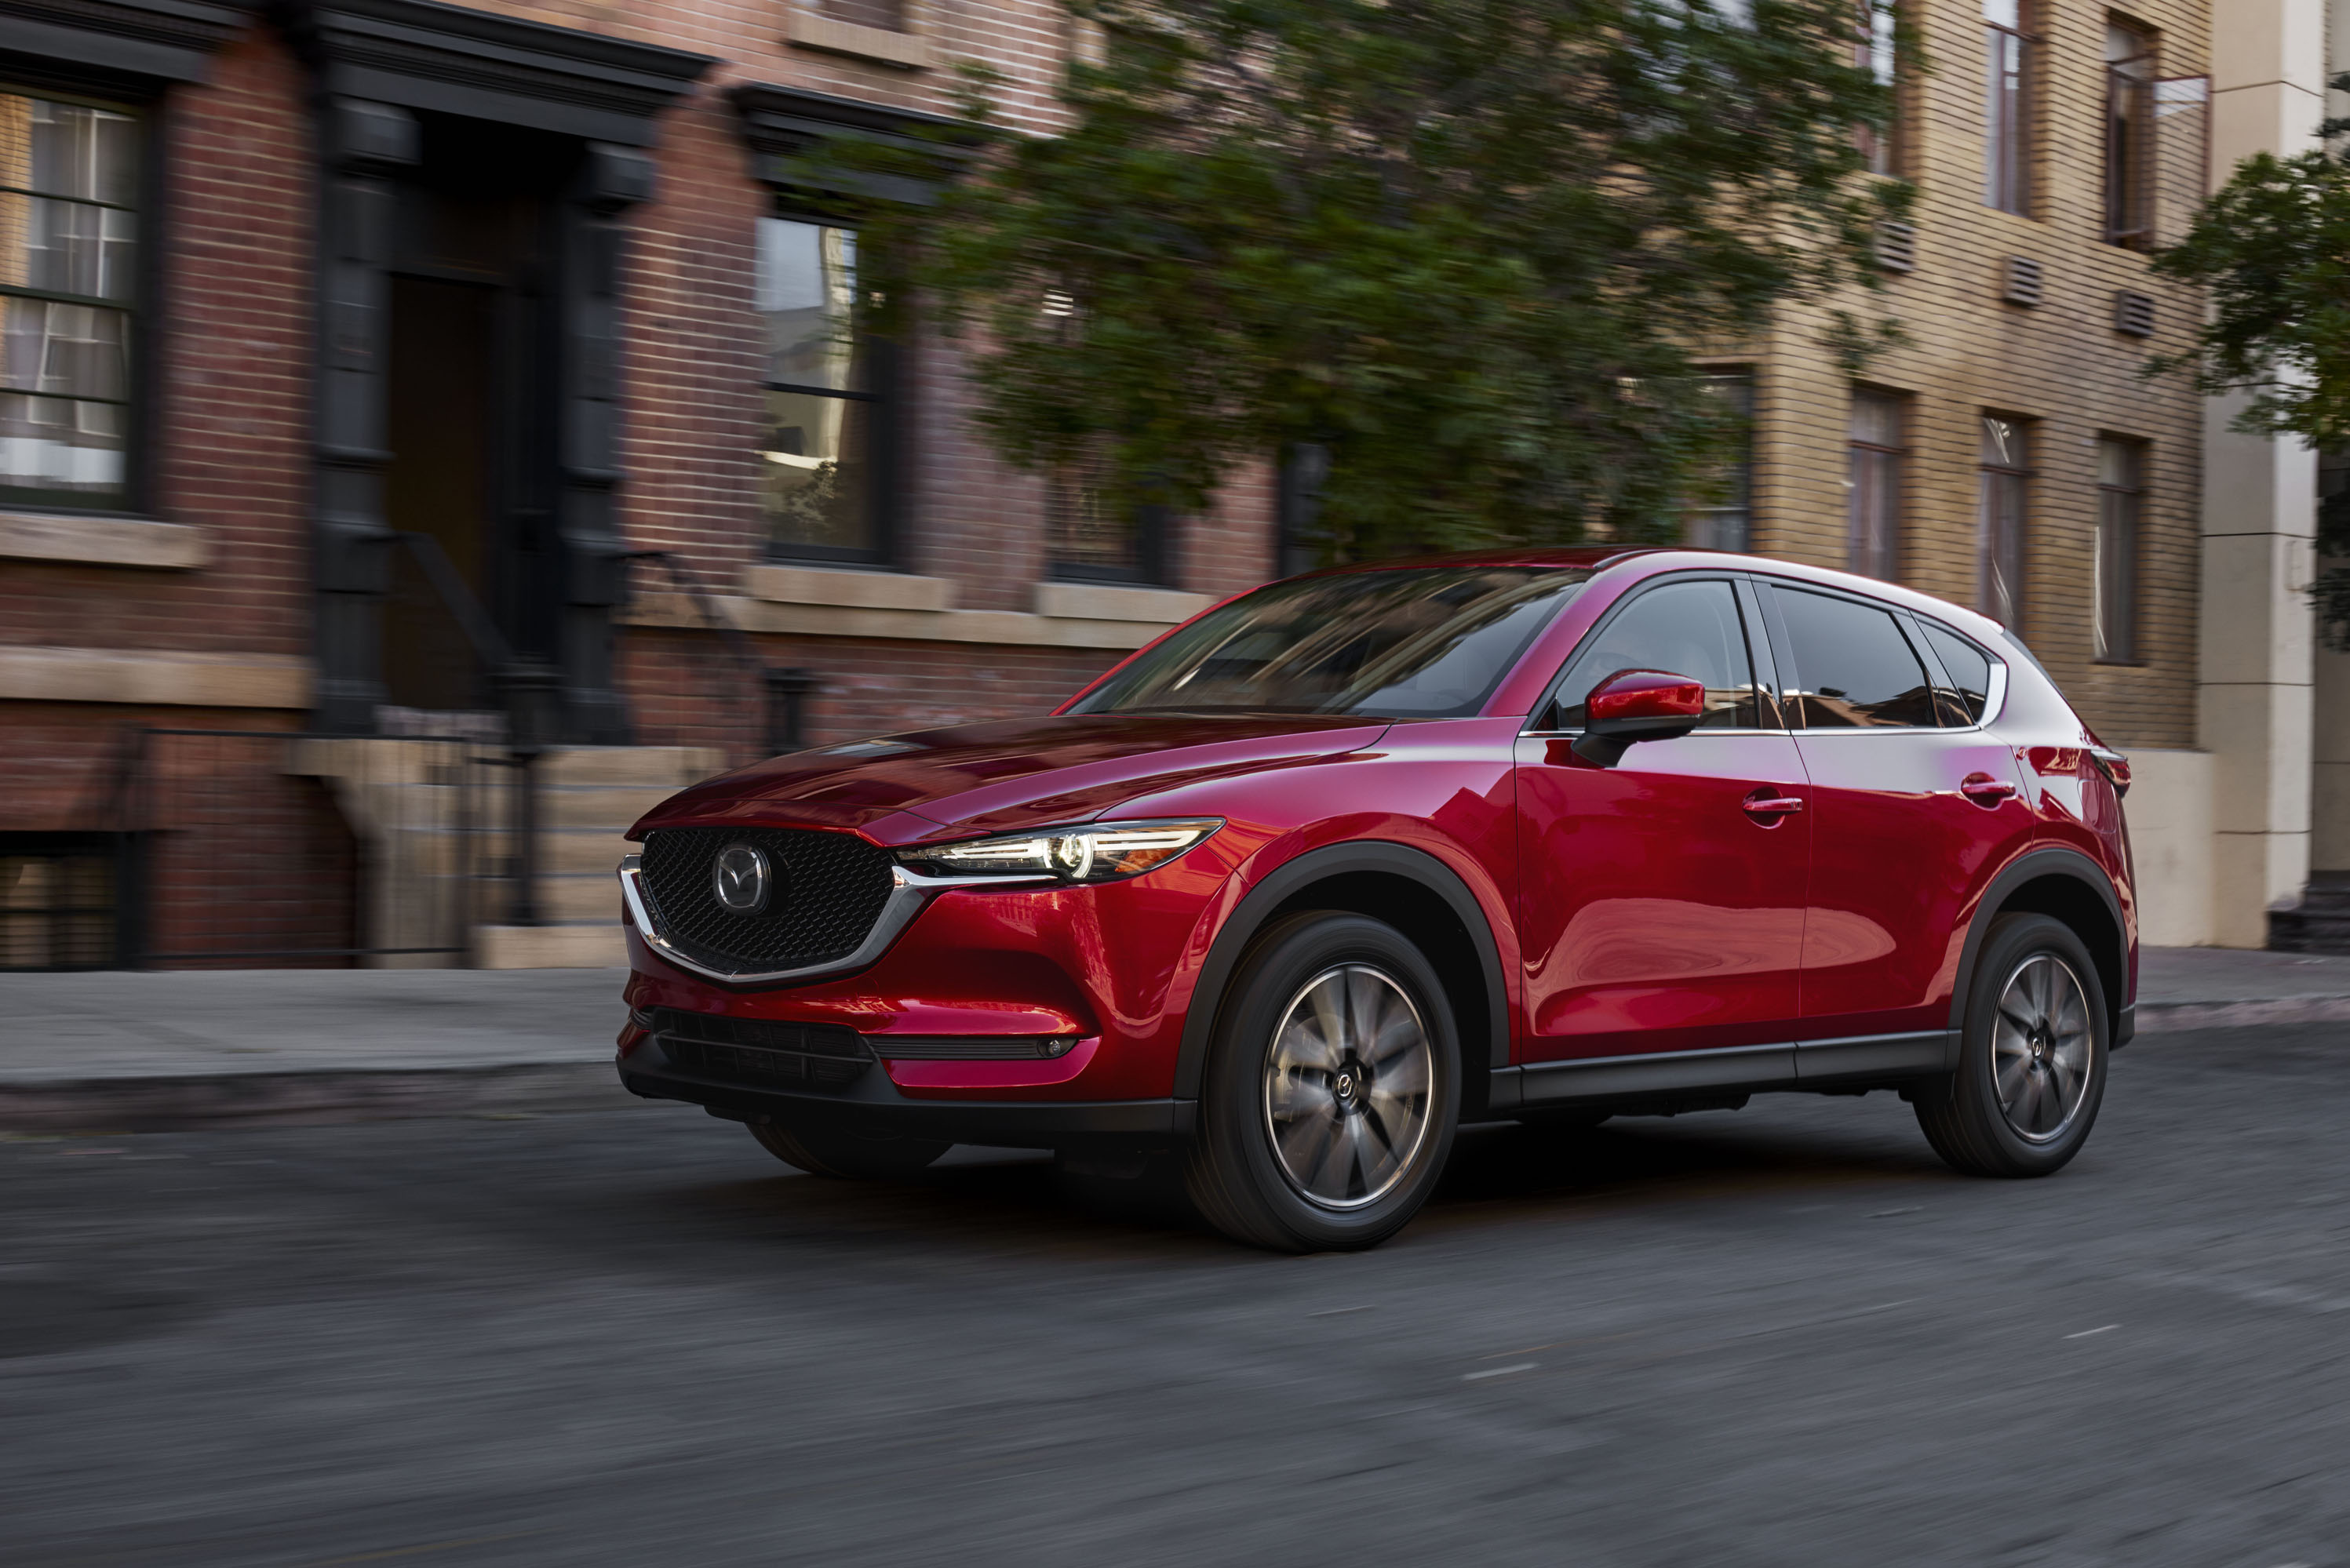 Mazda Cx 5 Gas Mileage >> 2018 Mazda Cx 5 Review Ratings Specs Prices And Photos